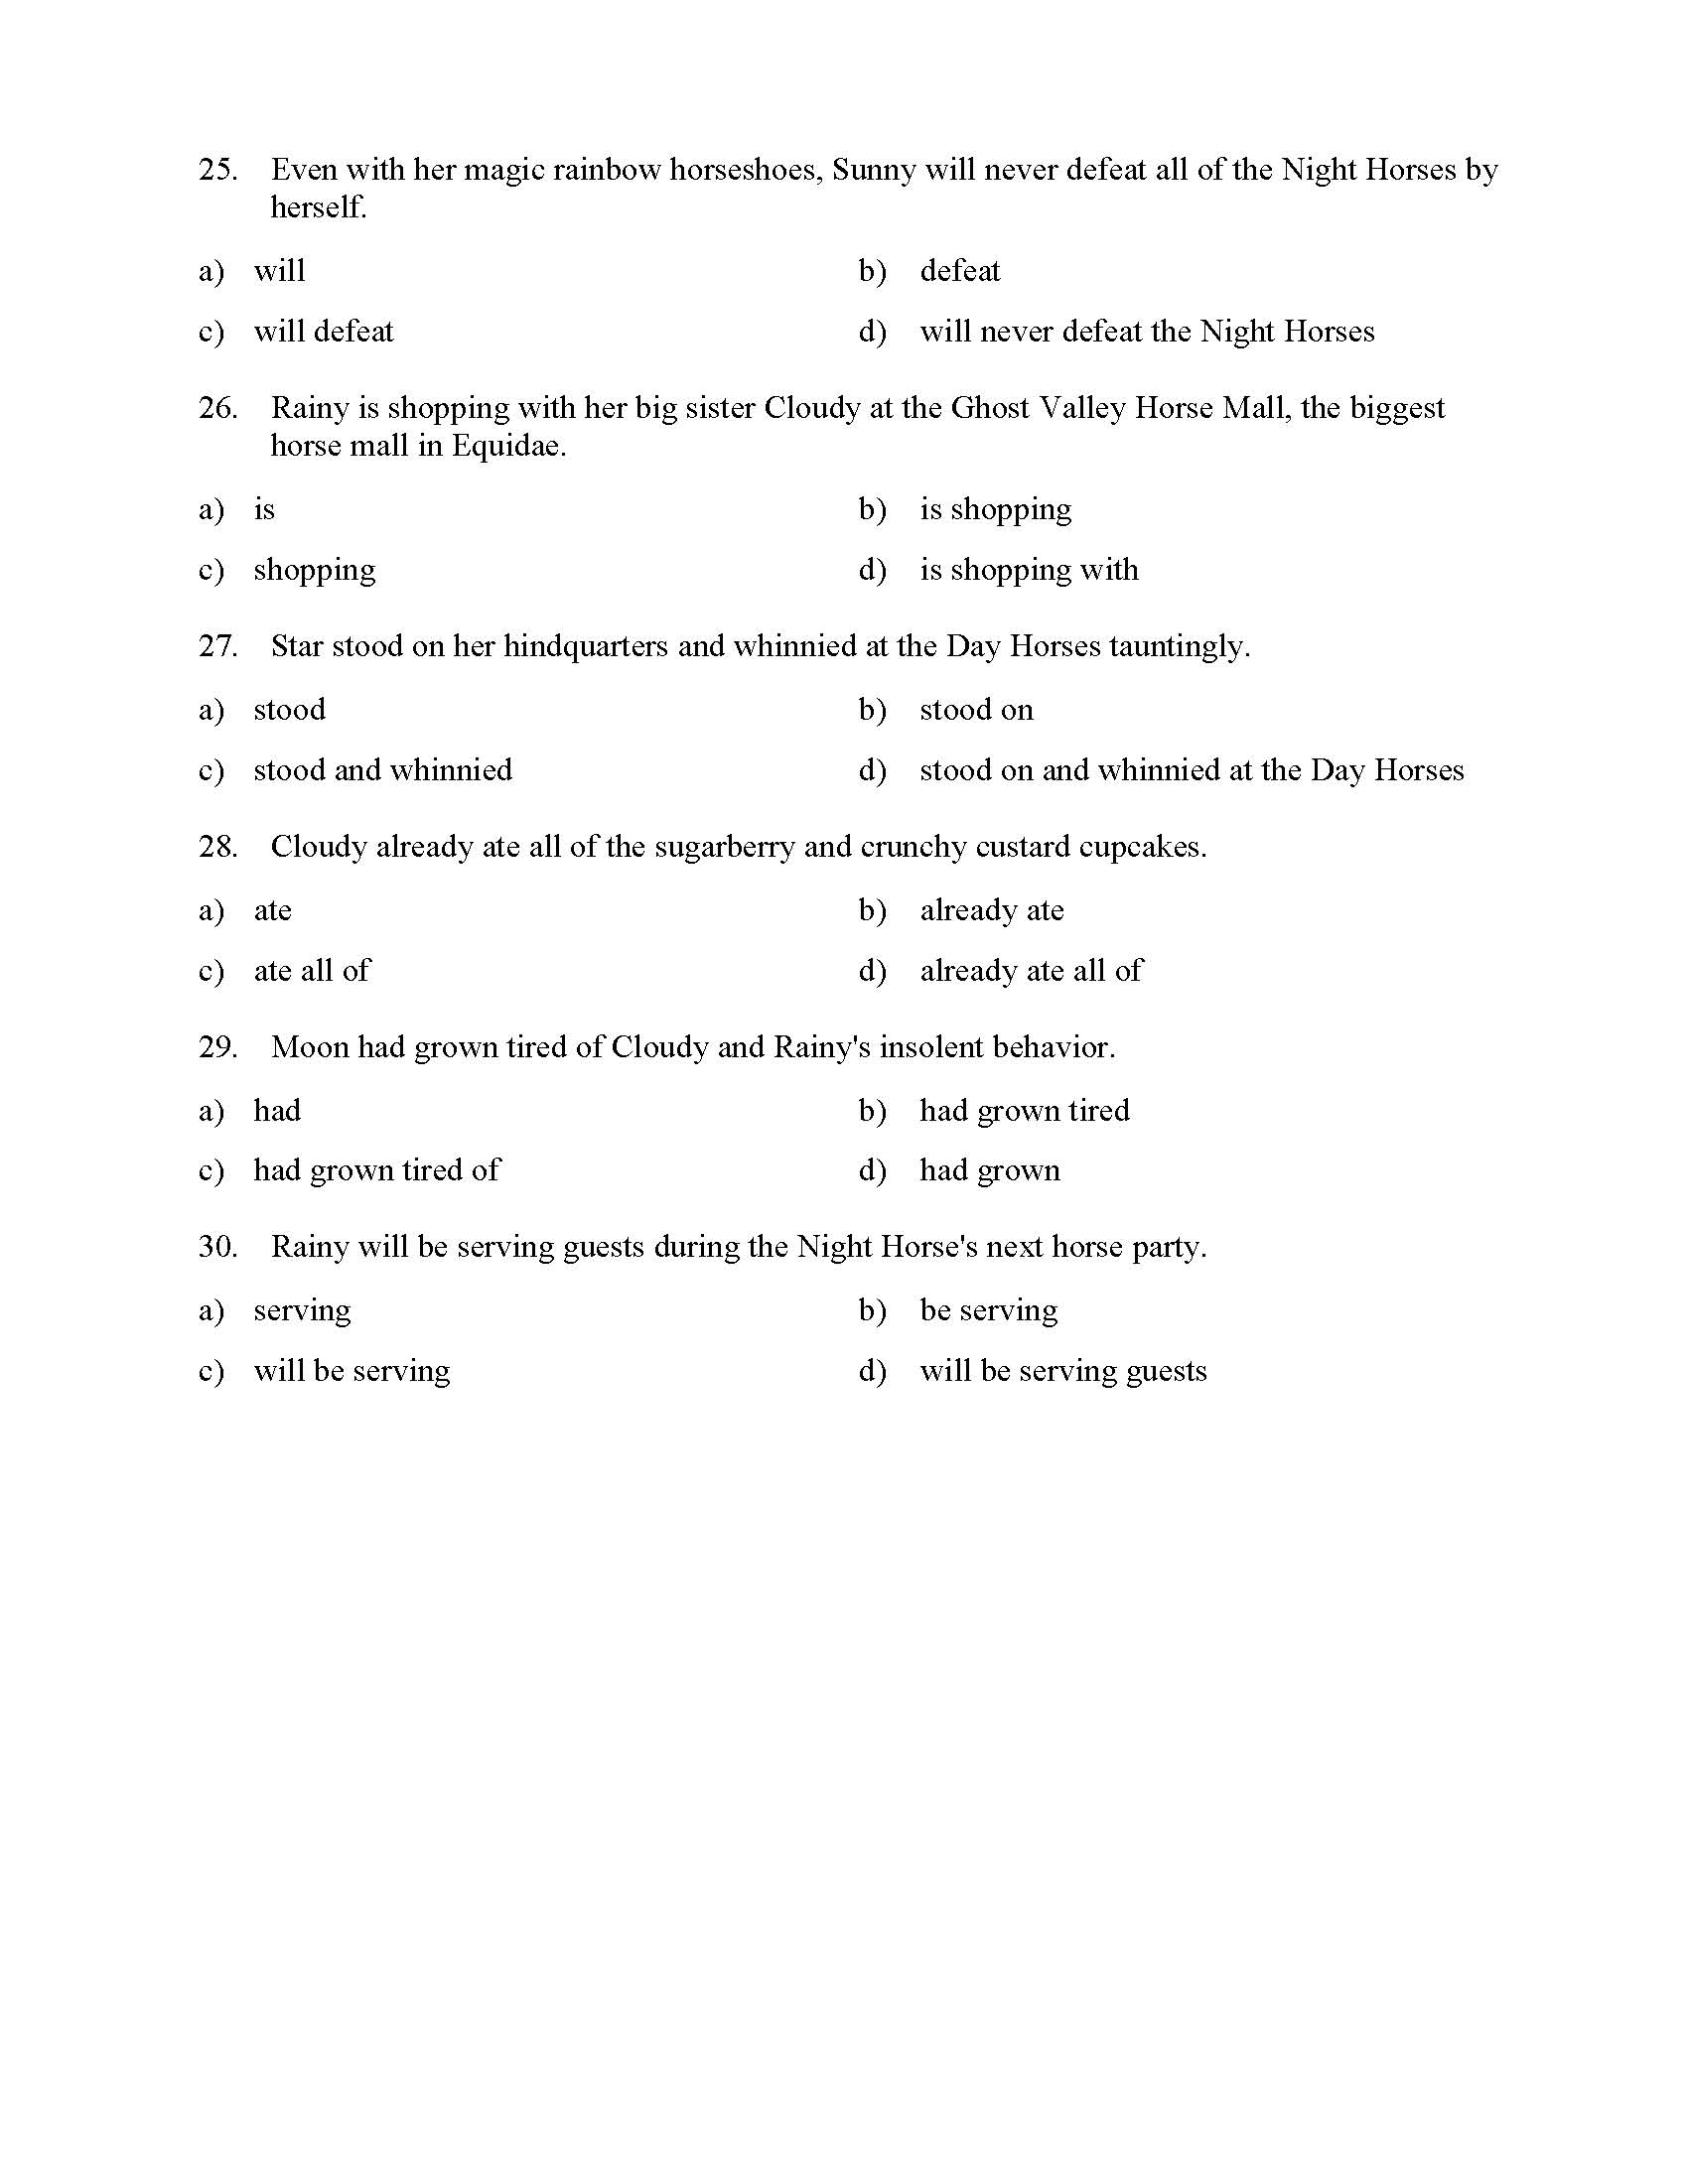 Verb Phrases Test With Horses Reading Level 3 Preview